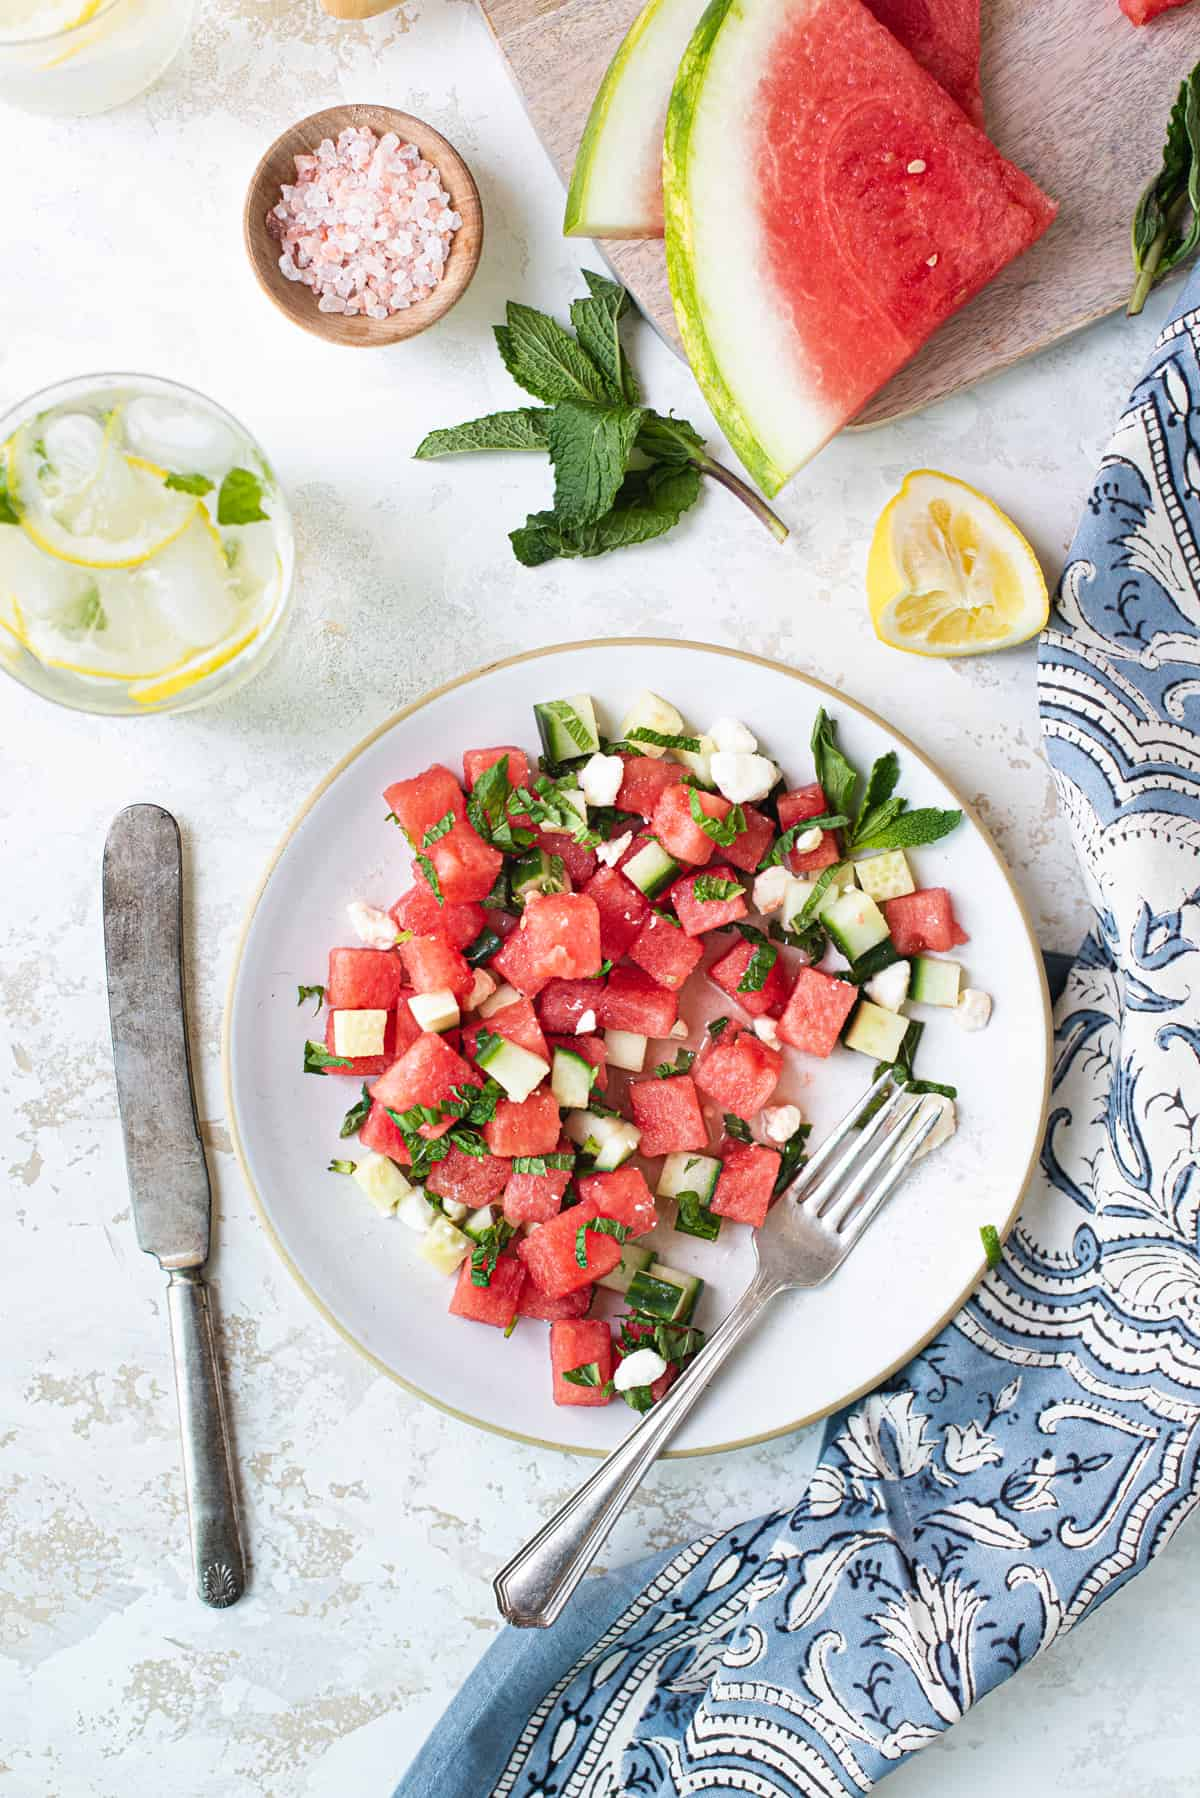 chopped watermelon salad on white plate with fork, knife, and blue patterned napkin